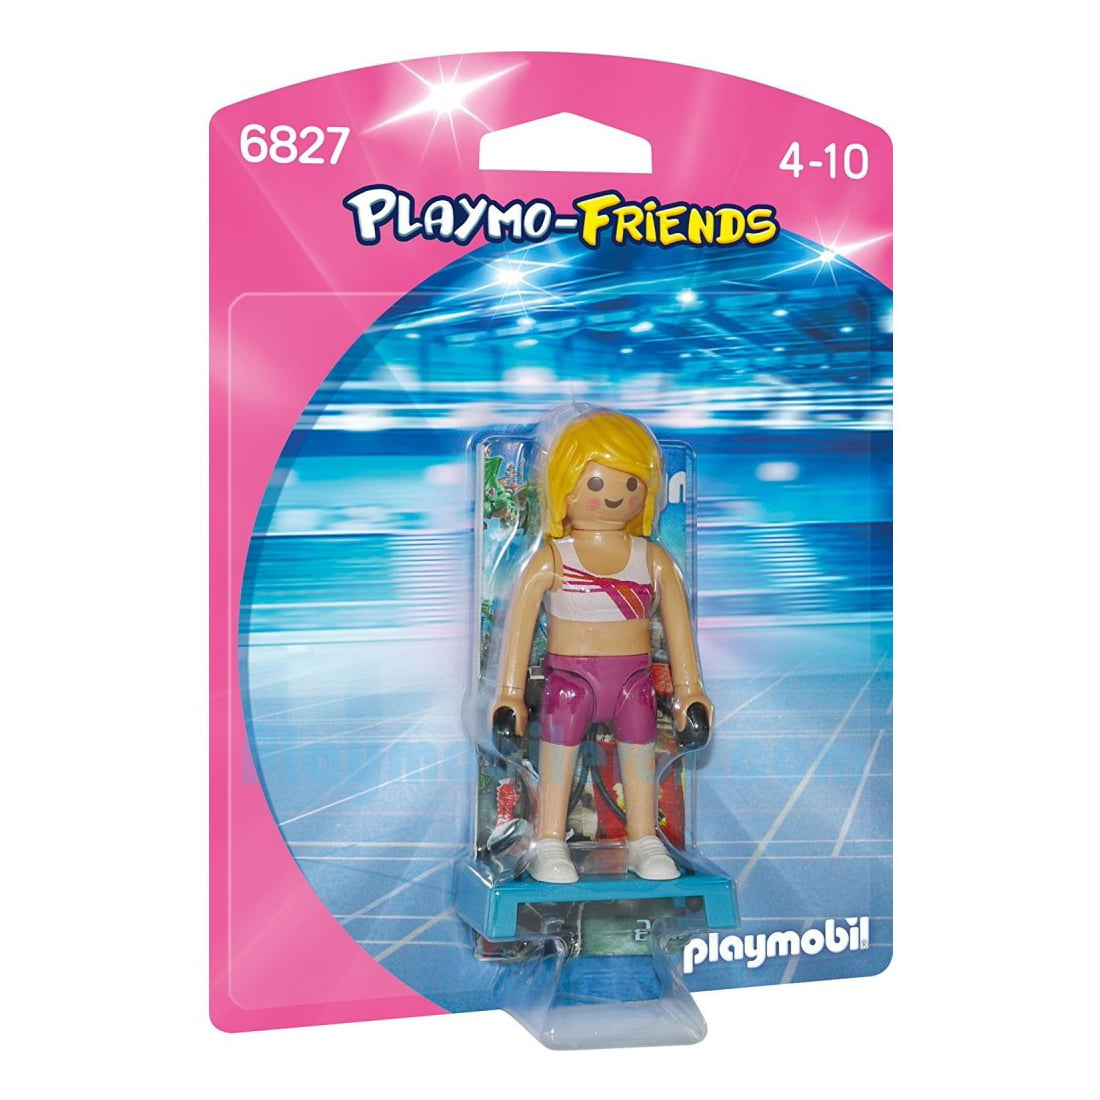 PLAYMOBIL - PLAYMO-FRIENDS - 6827